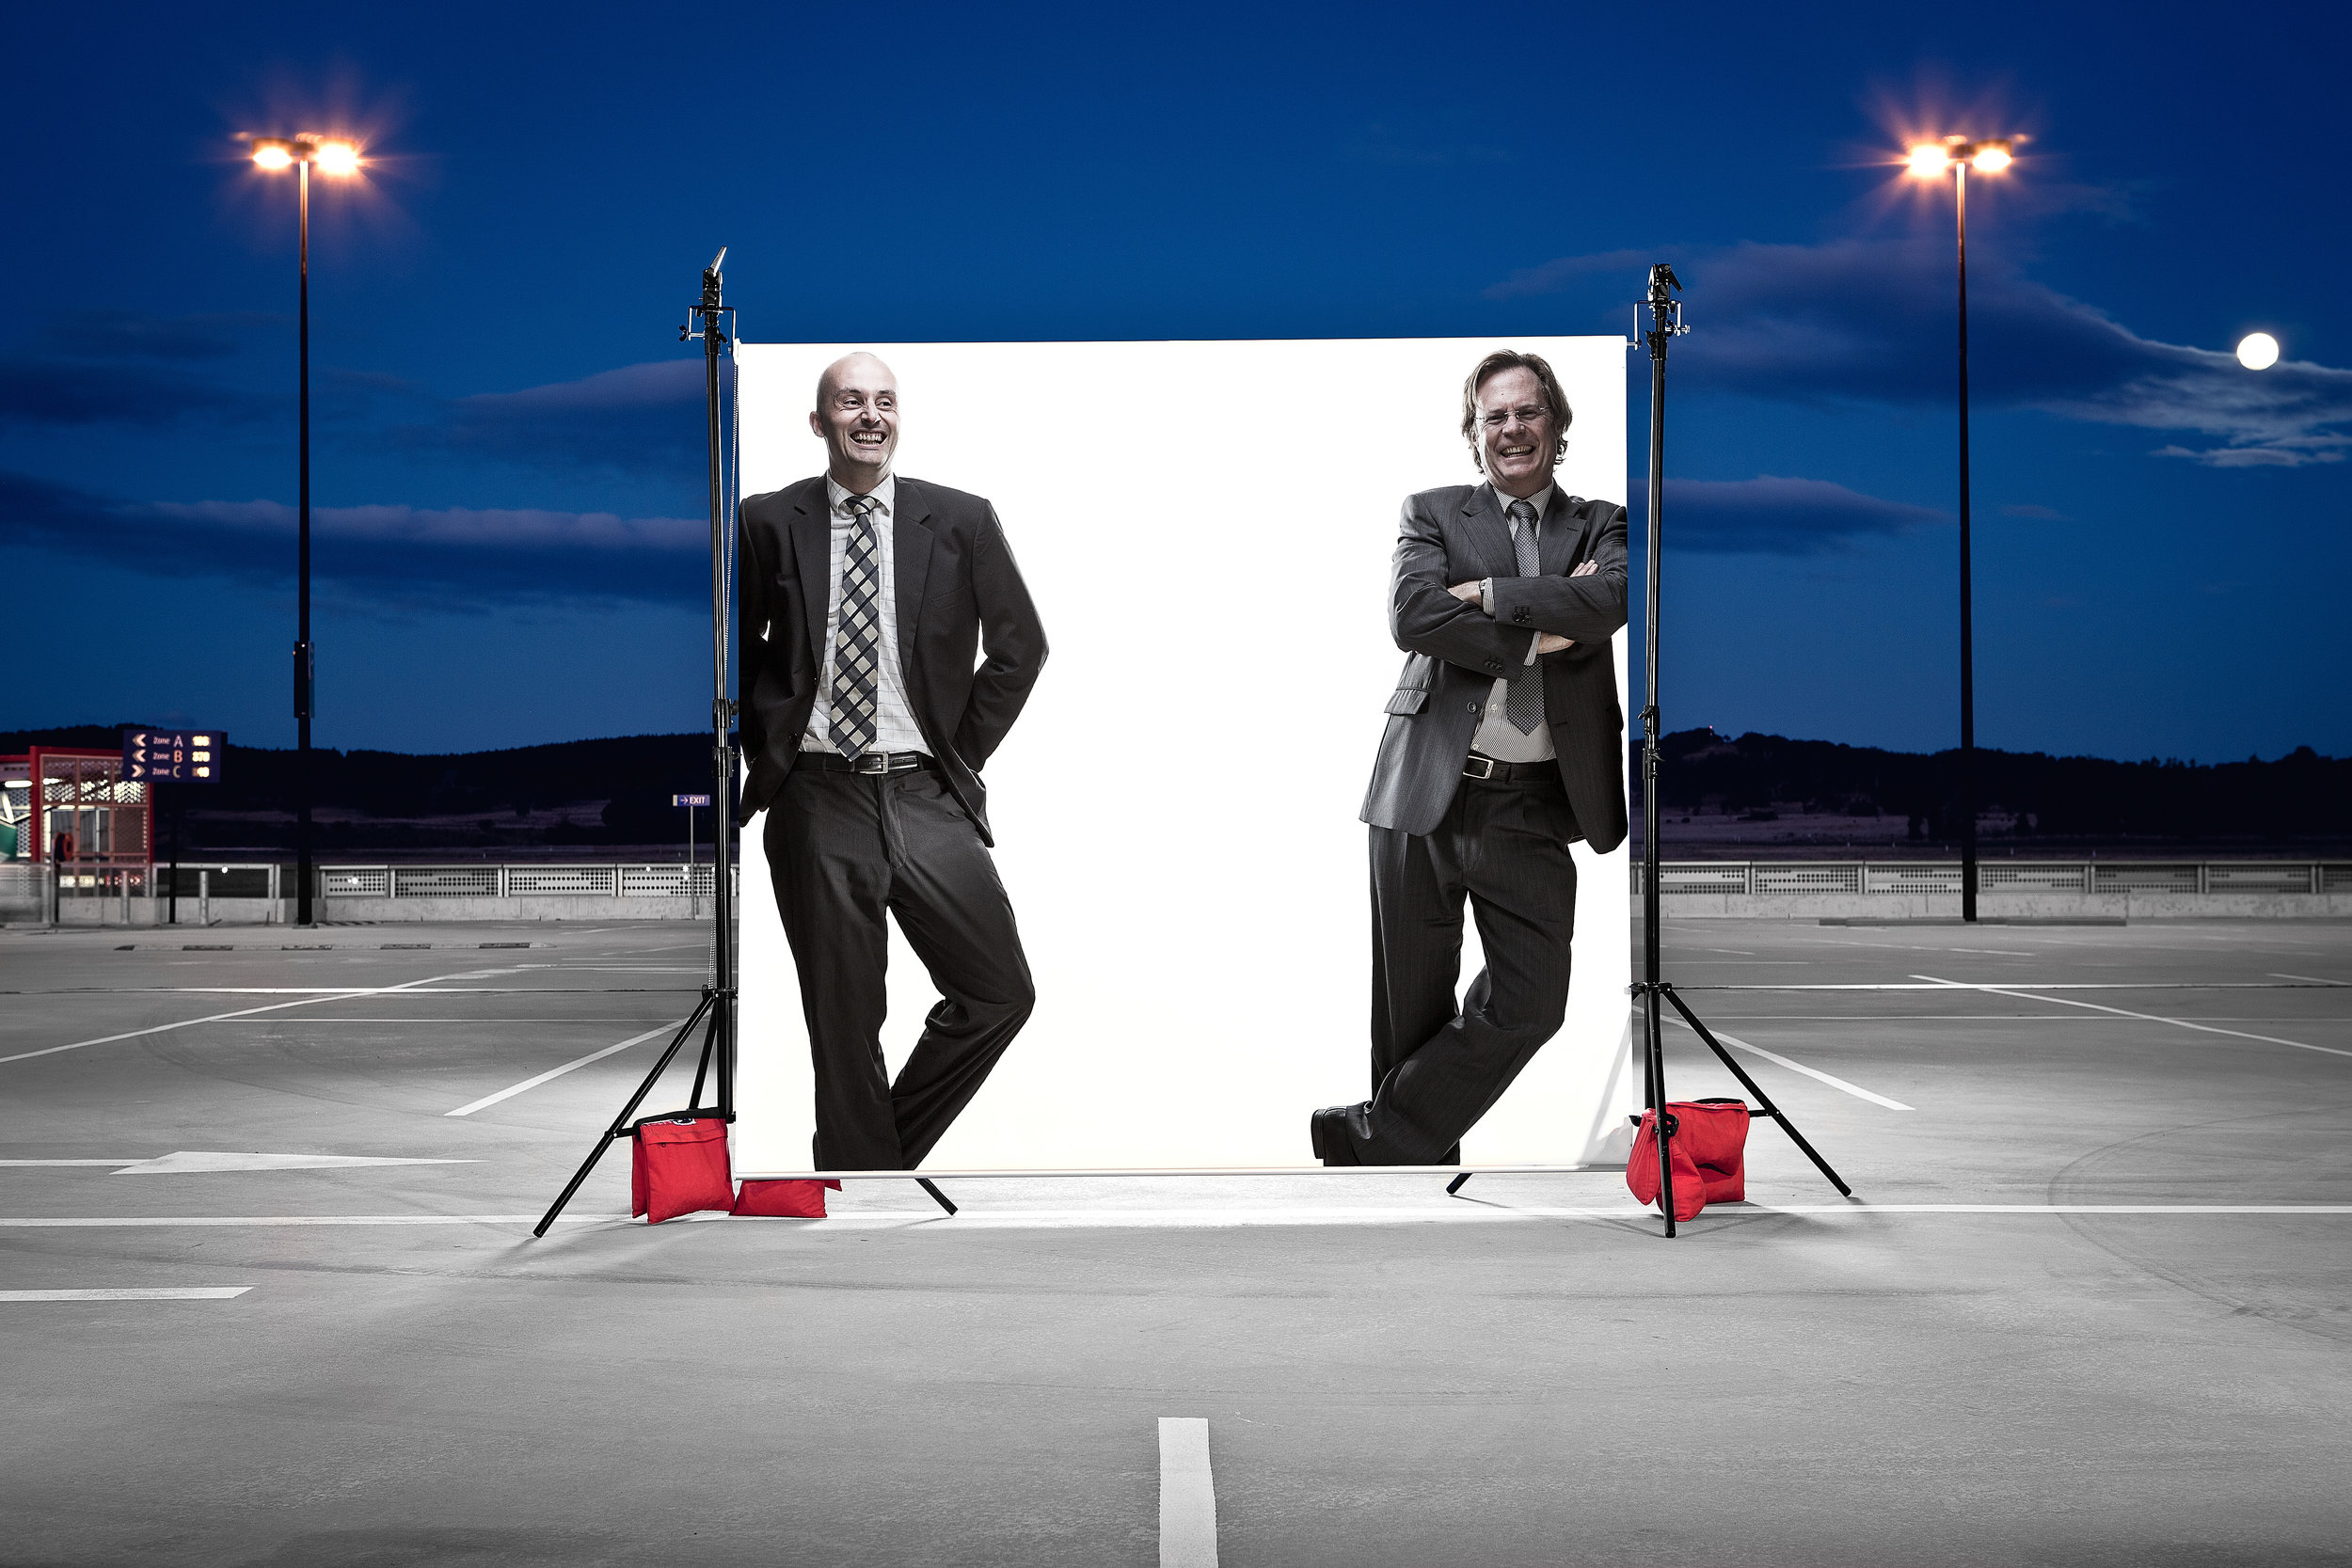 Business or trade magazine photograph showing two men framed within a photographic white background in an urban environment